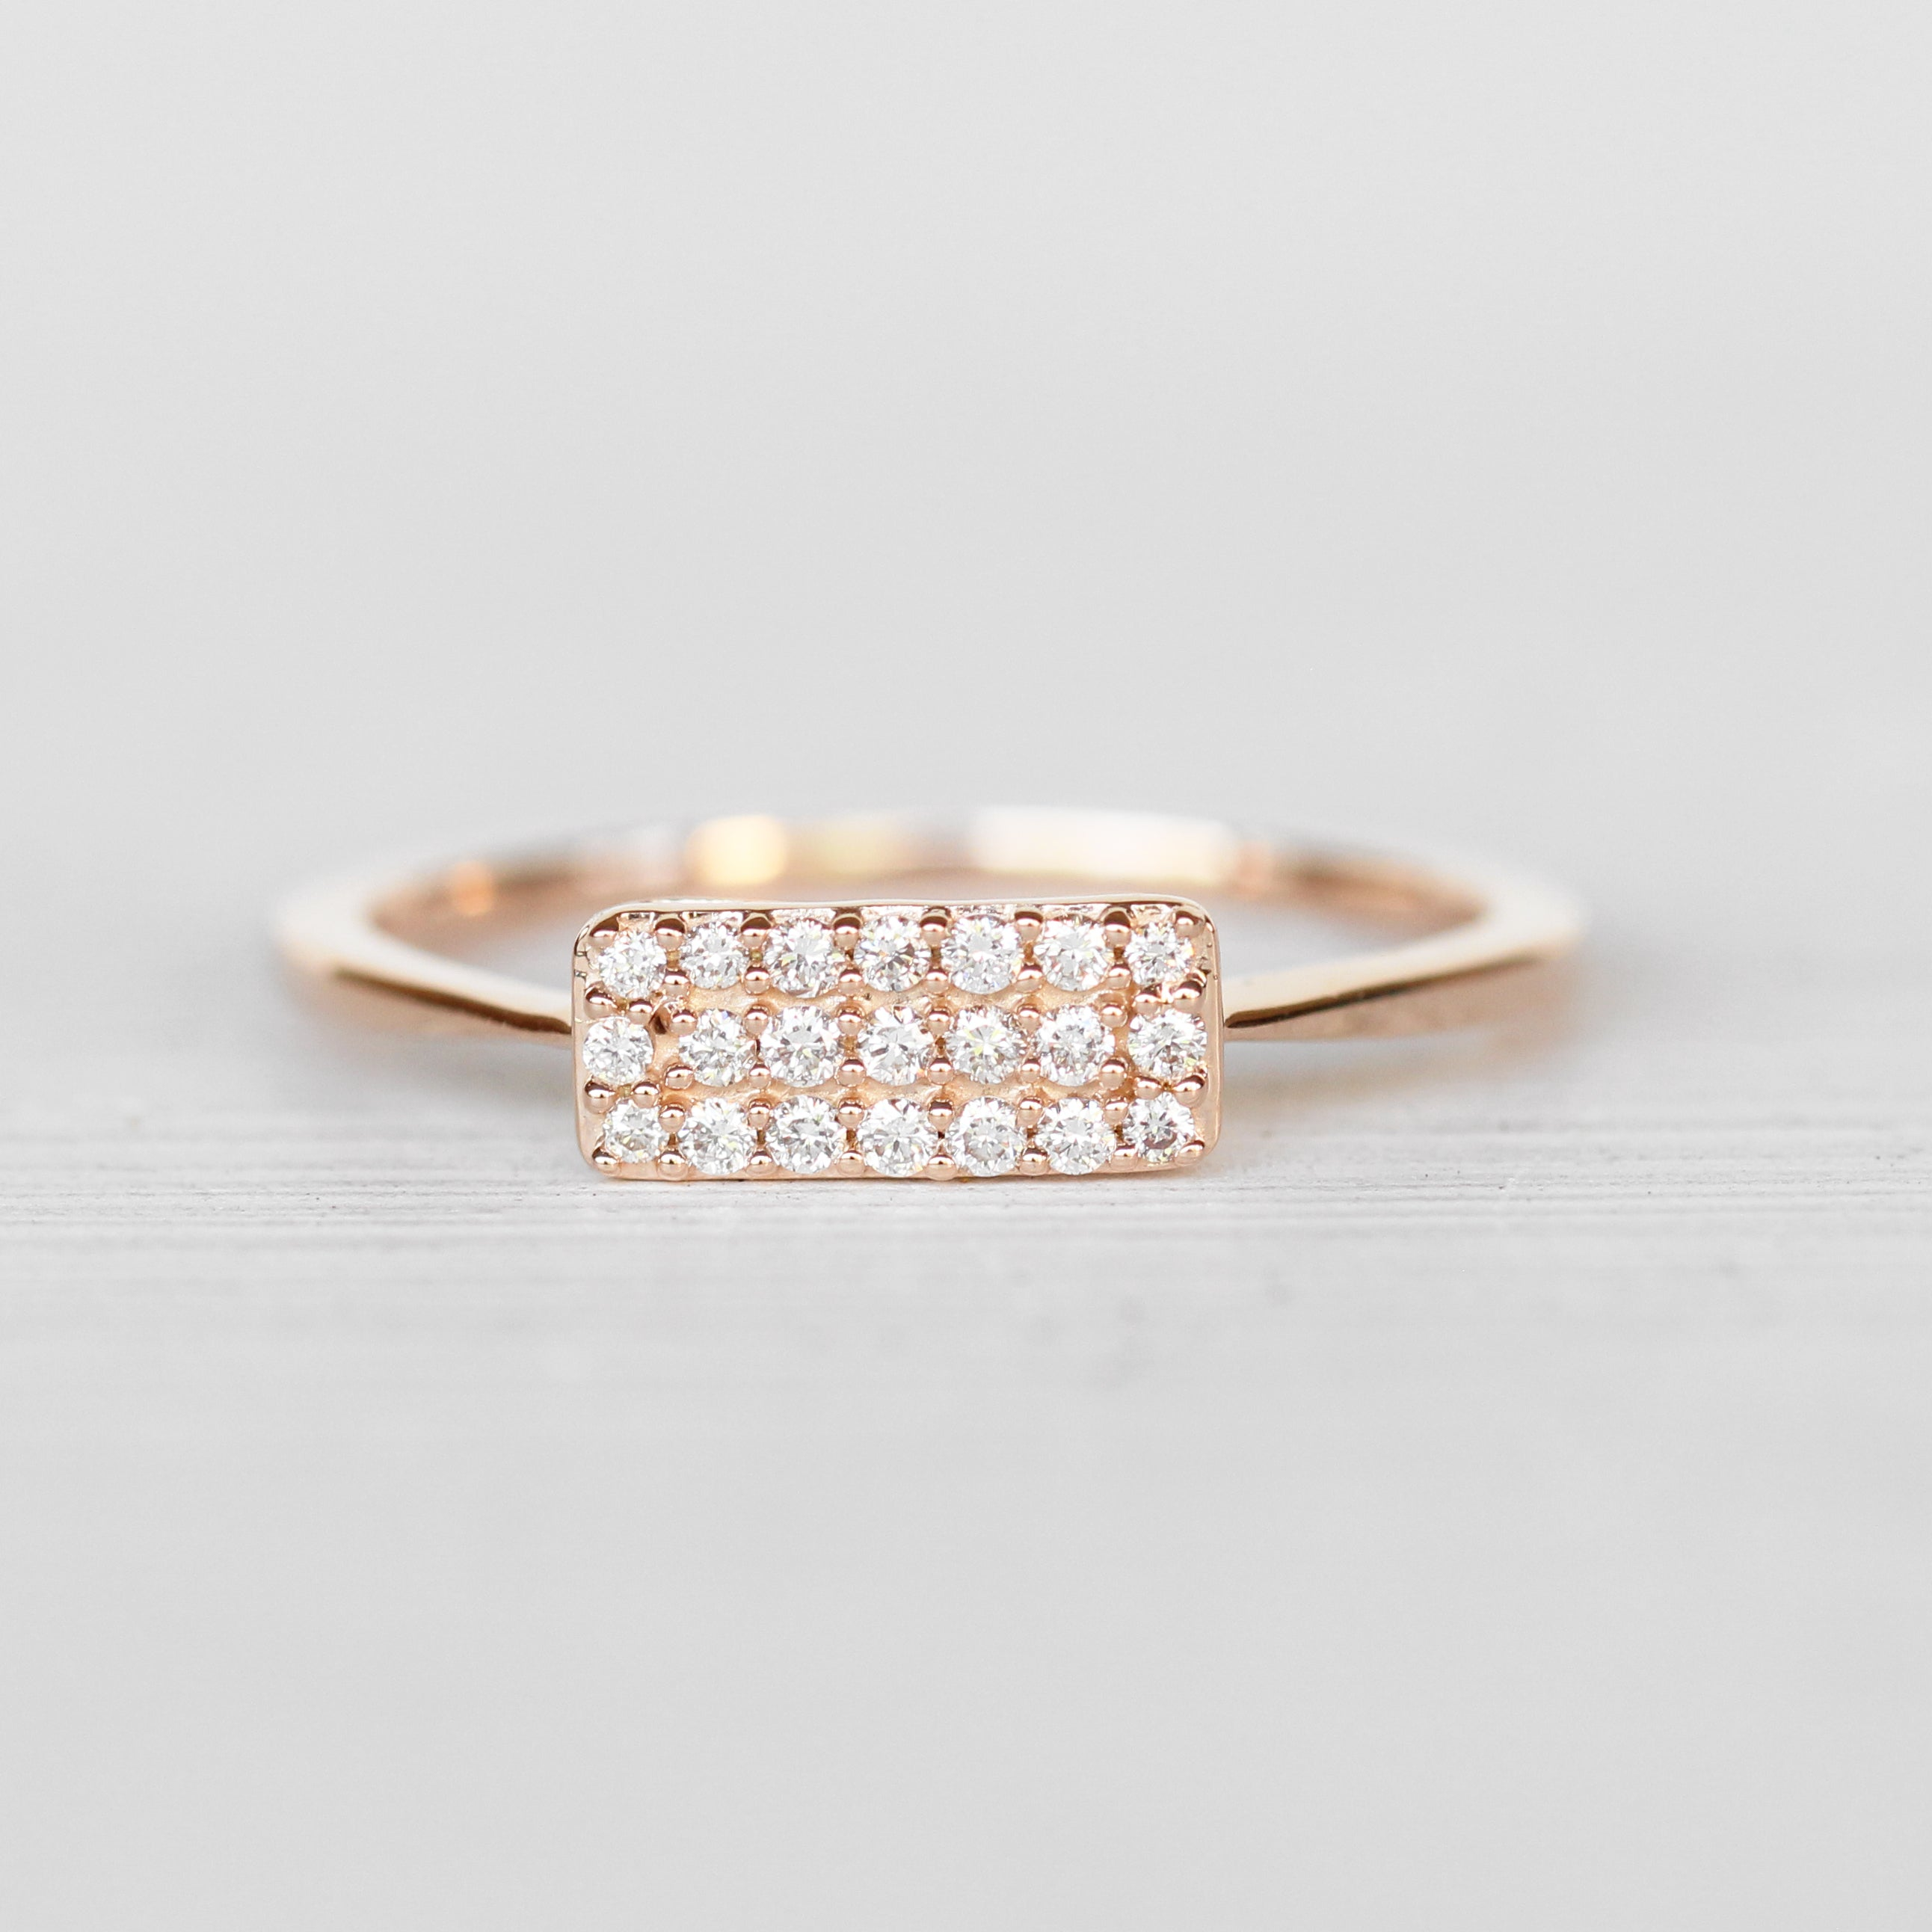 Heather Rectangular Shaped Stacking Diamond Ring in 14k Rose Gold - Ready to Size and Ship - Celestial Diamonds ® by Midwinter Co.